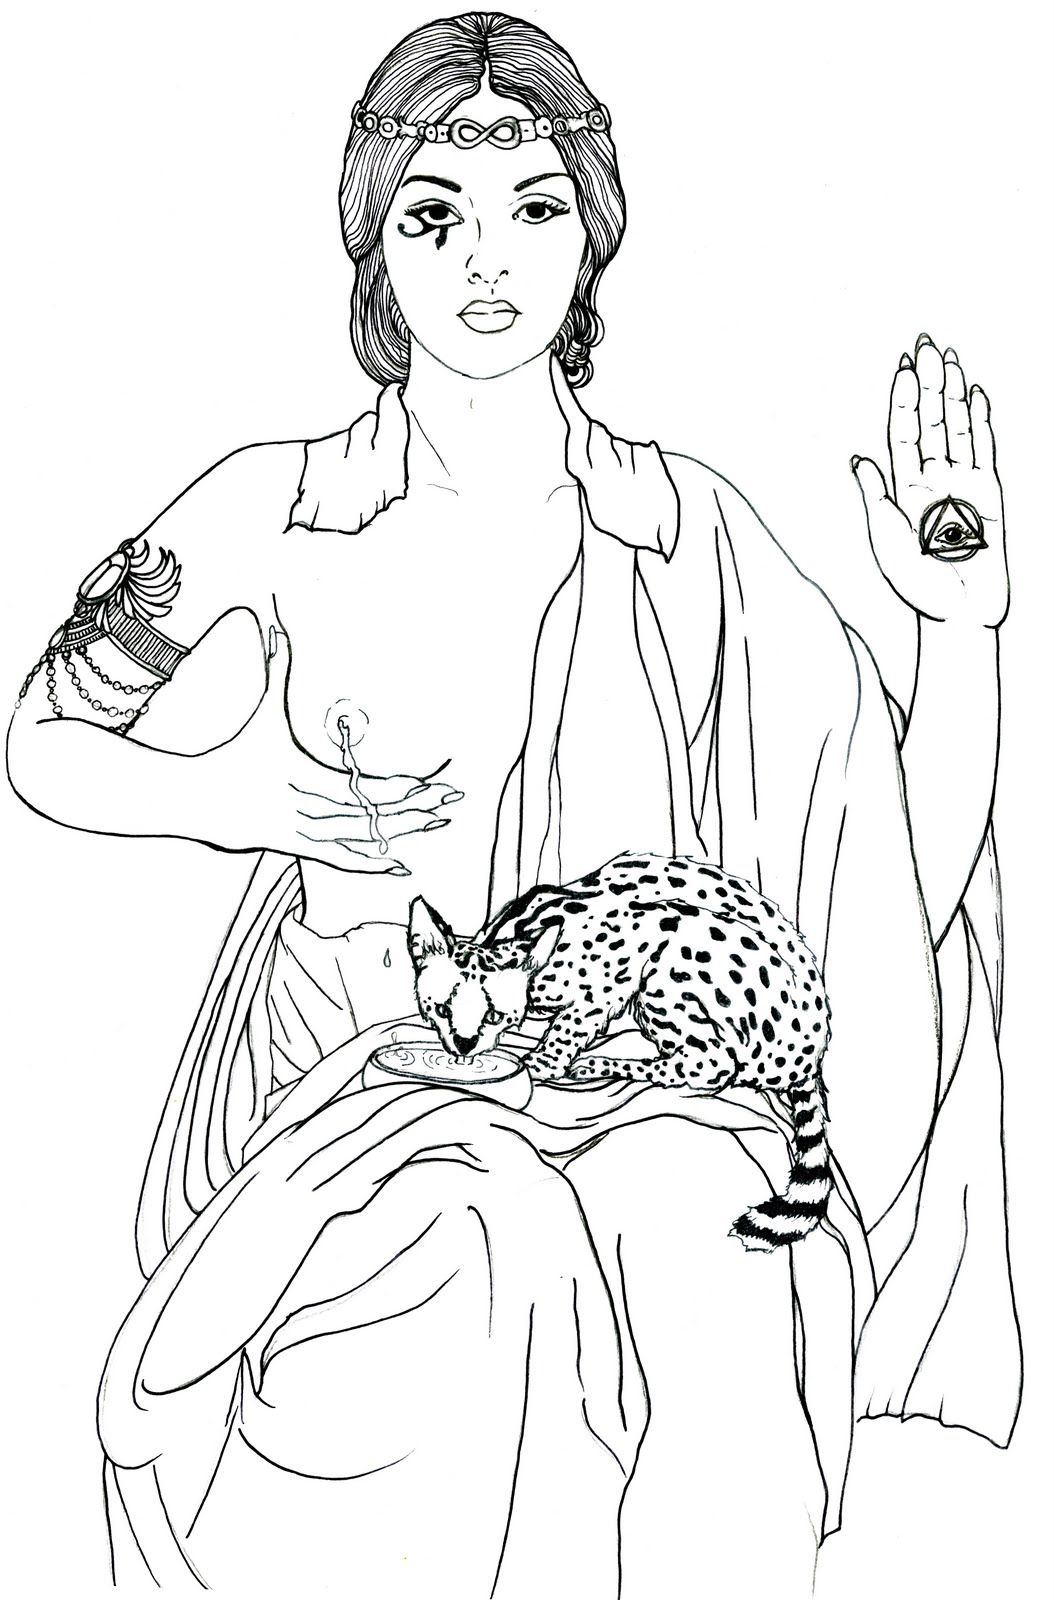 Fine art coloring page | Black and White 黑与白 | Pinterest | Adult ...